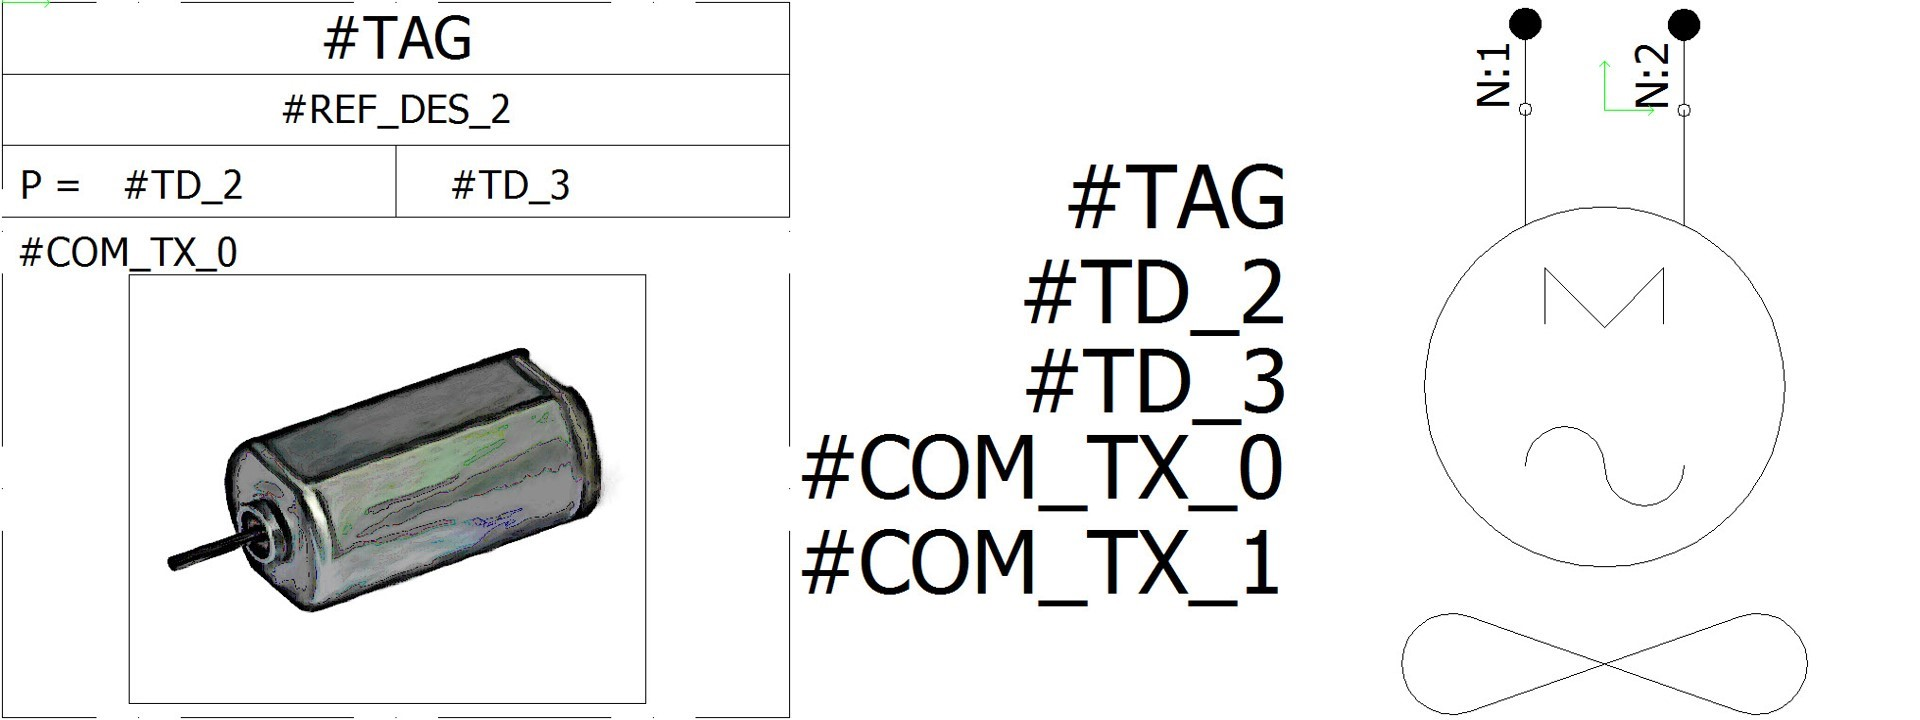 6a00d83451706569e201901d595ada970b?resize\\\\\\\\\\\\\\\=665%2C249 ford f53 wiring diagram cruisecontrol wiring diagrams  at fashall.co